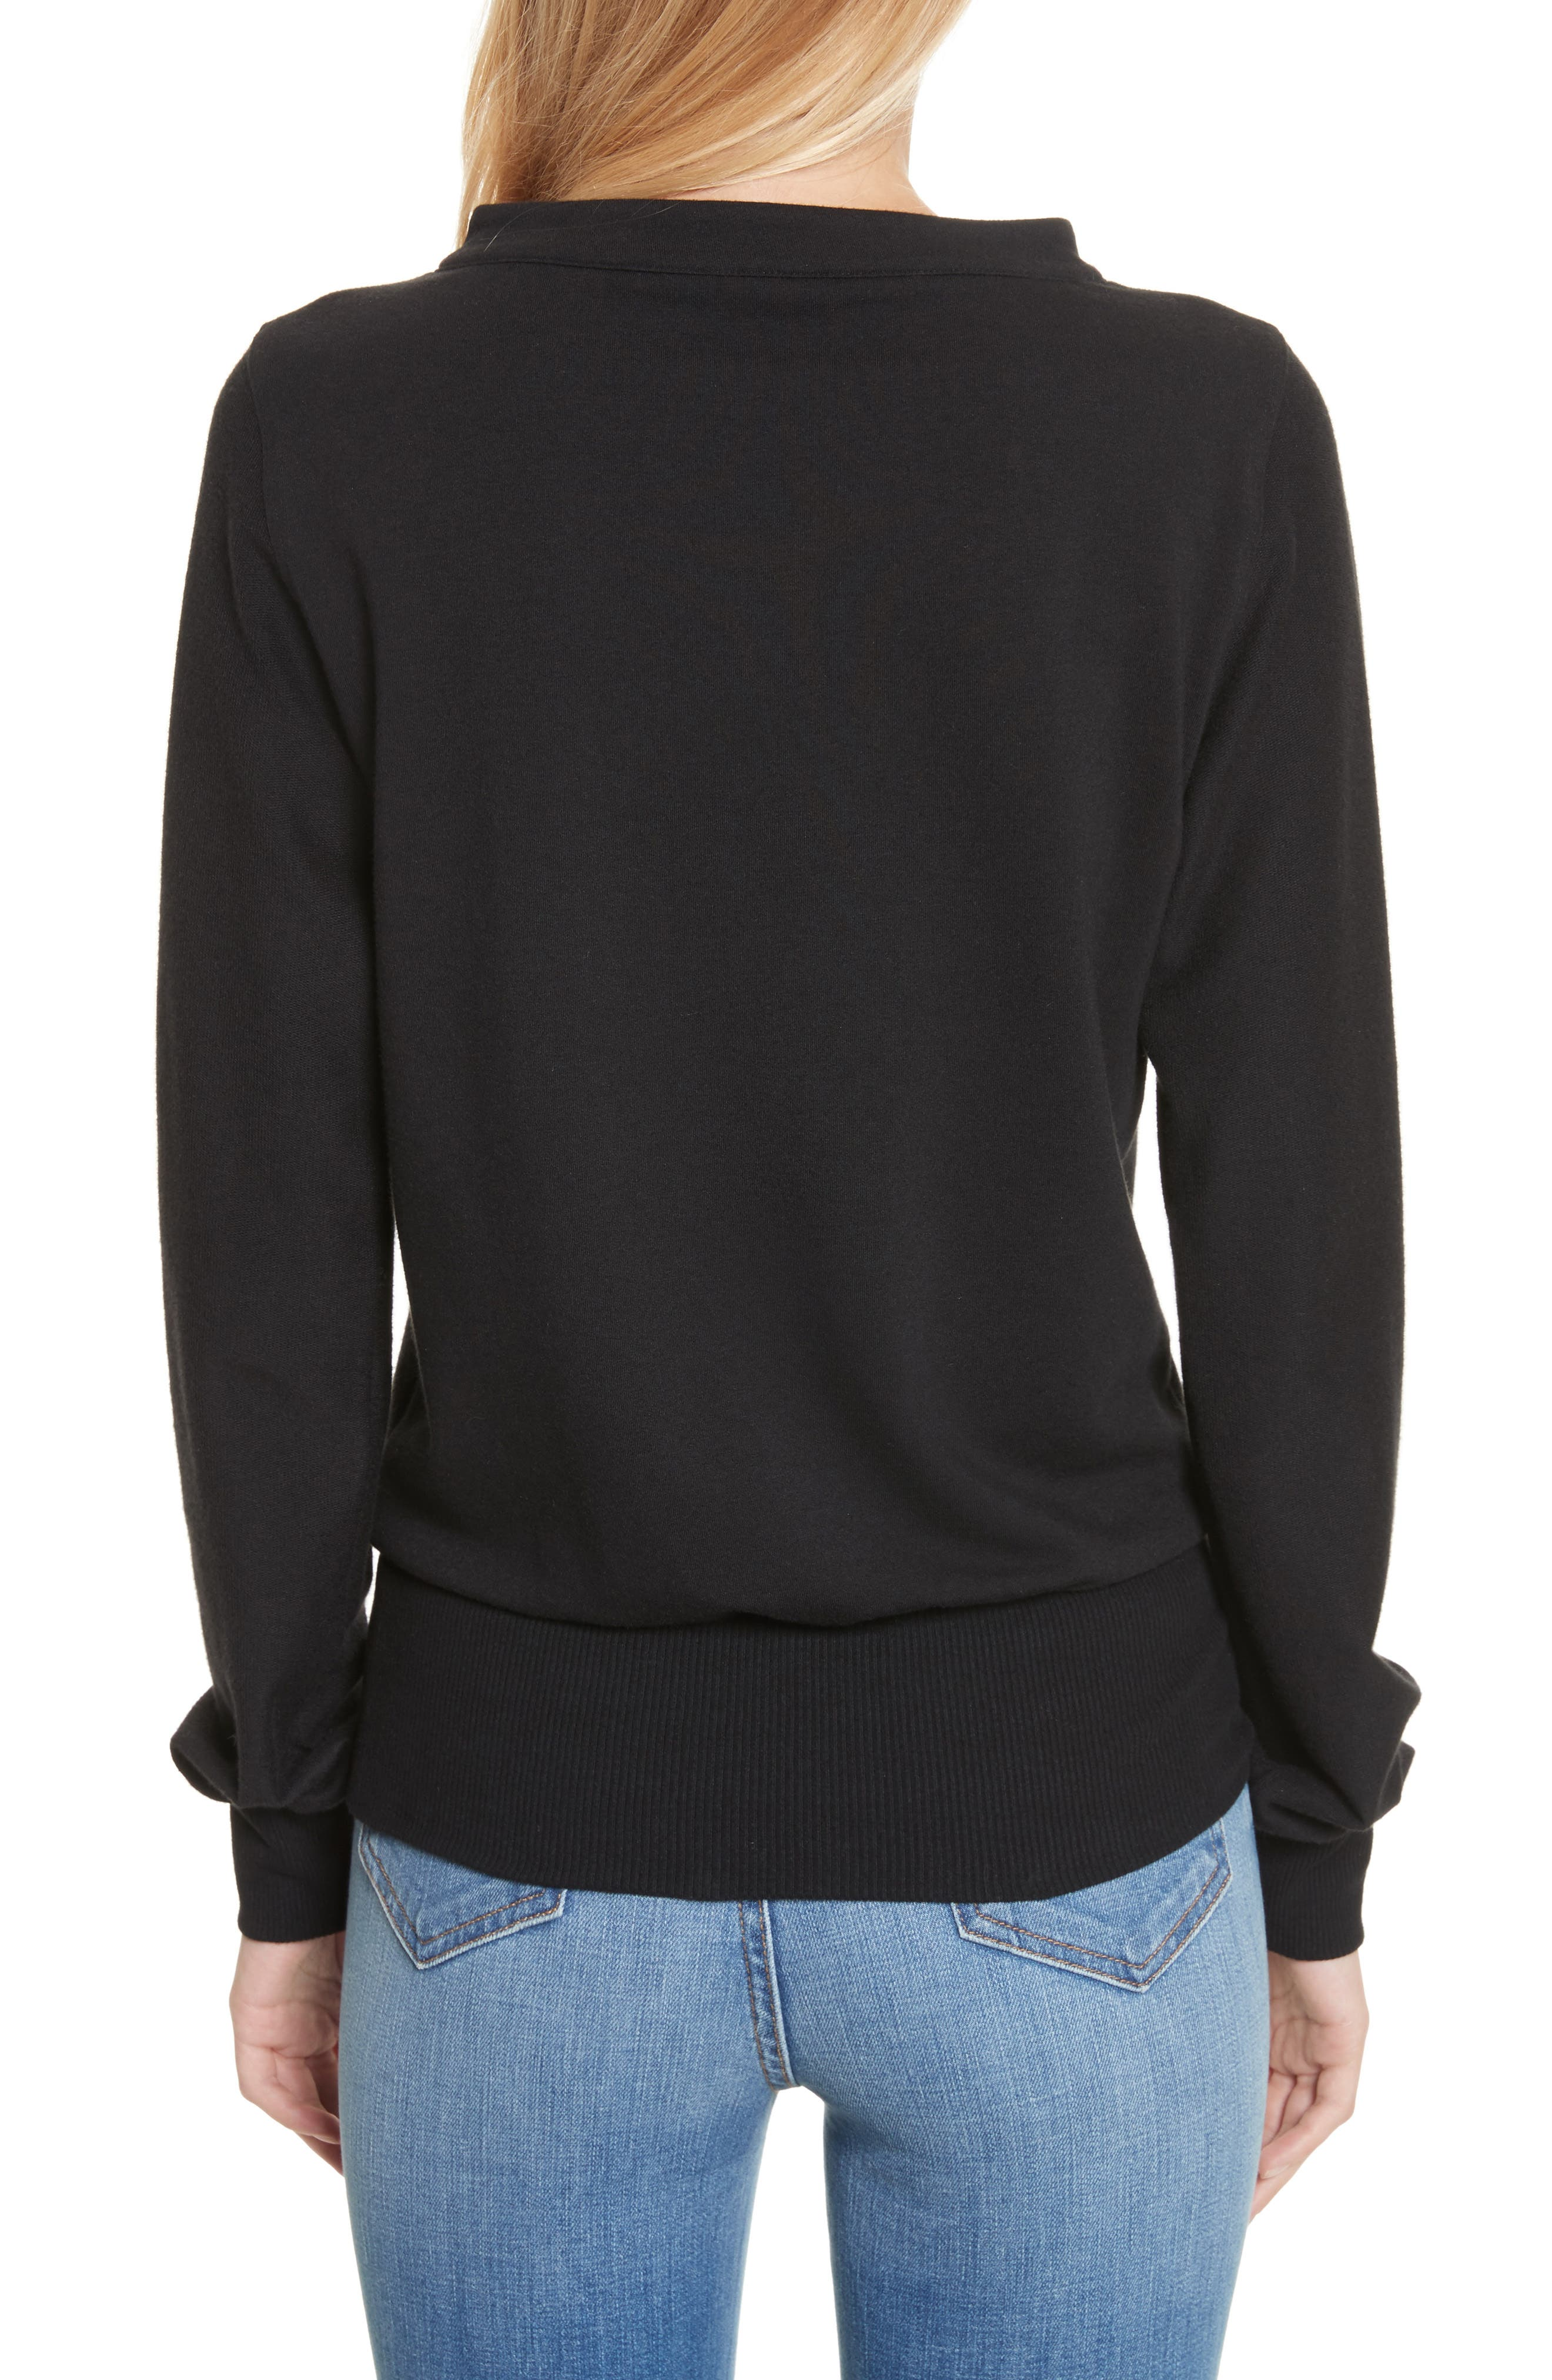 Josilyn Lace-Up Sweatshirt,                             Alternate thumbnail 2, color,                             001